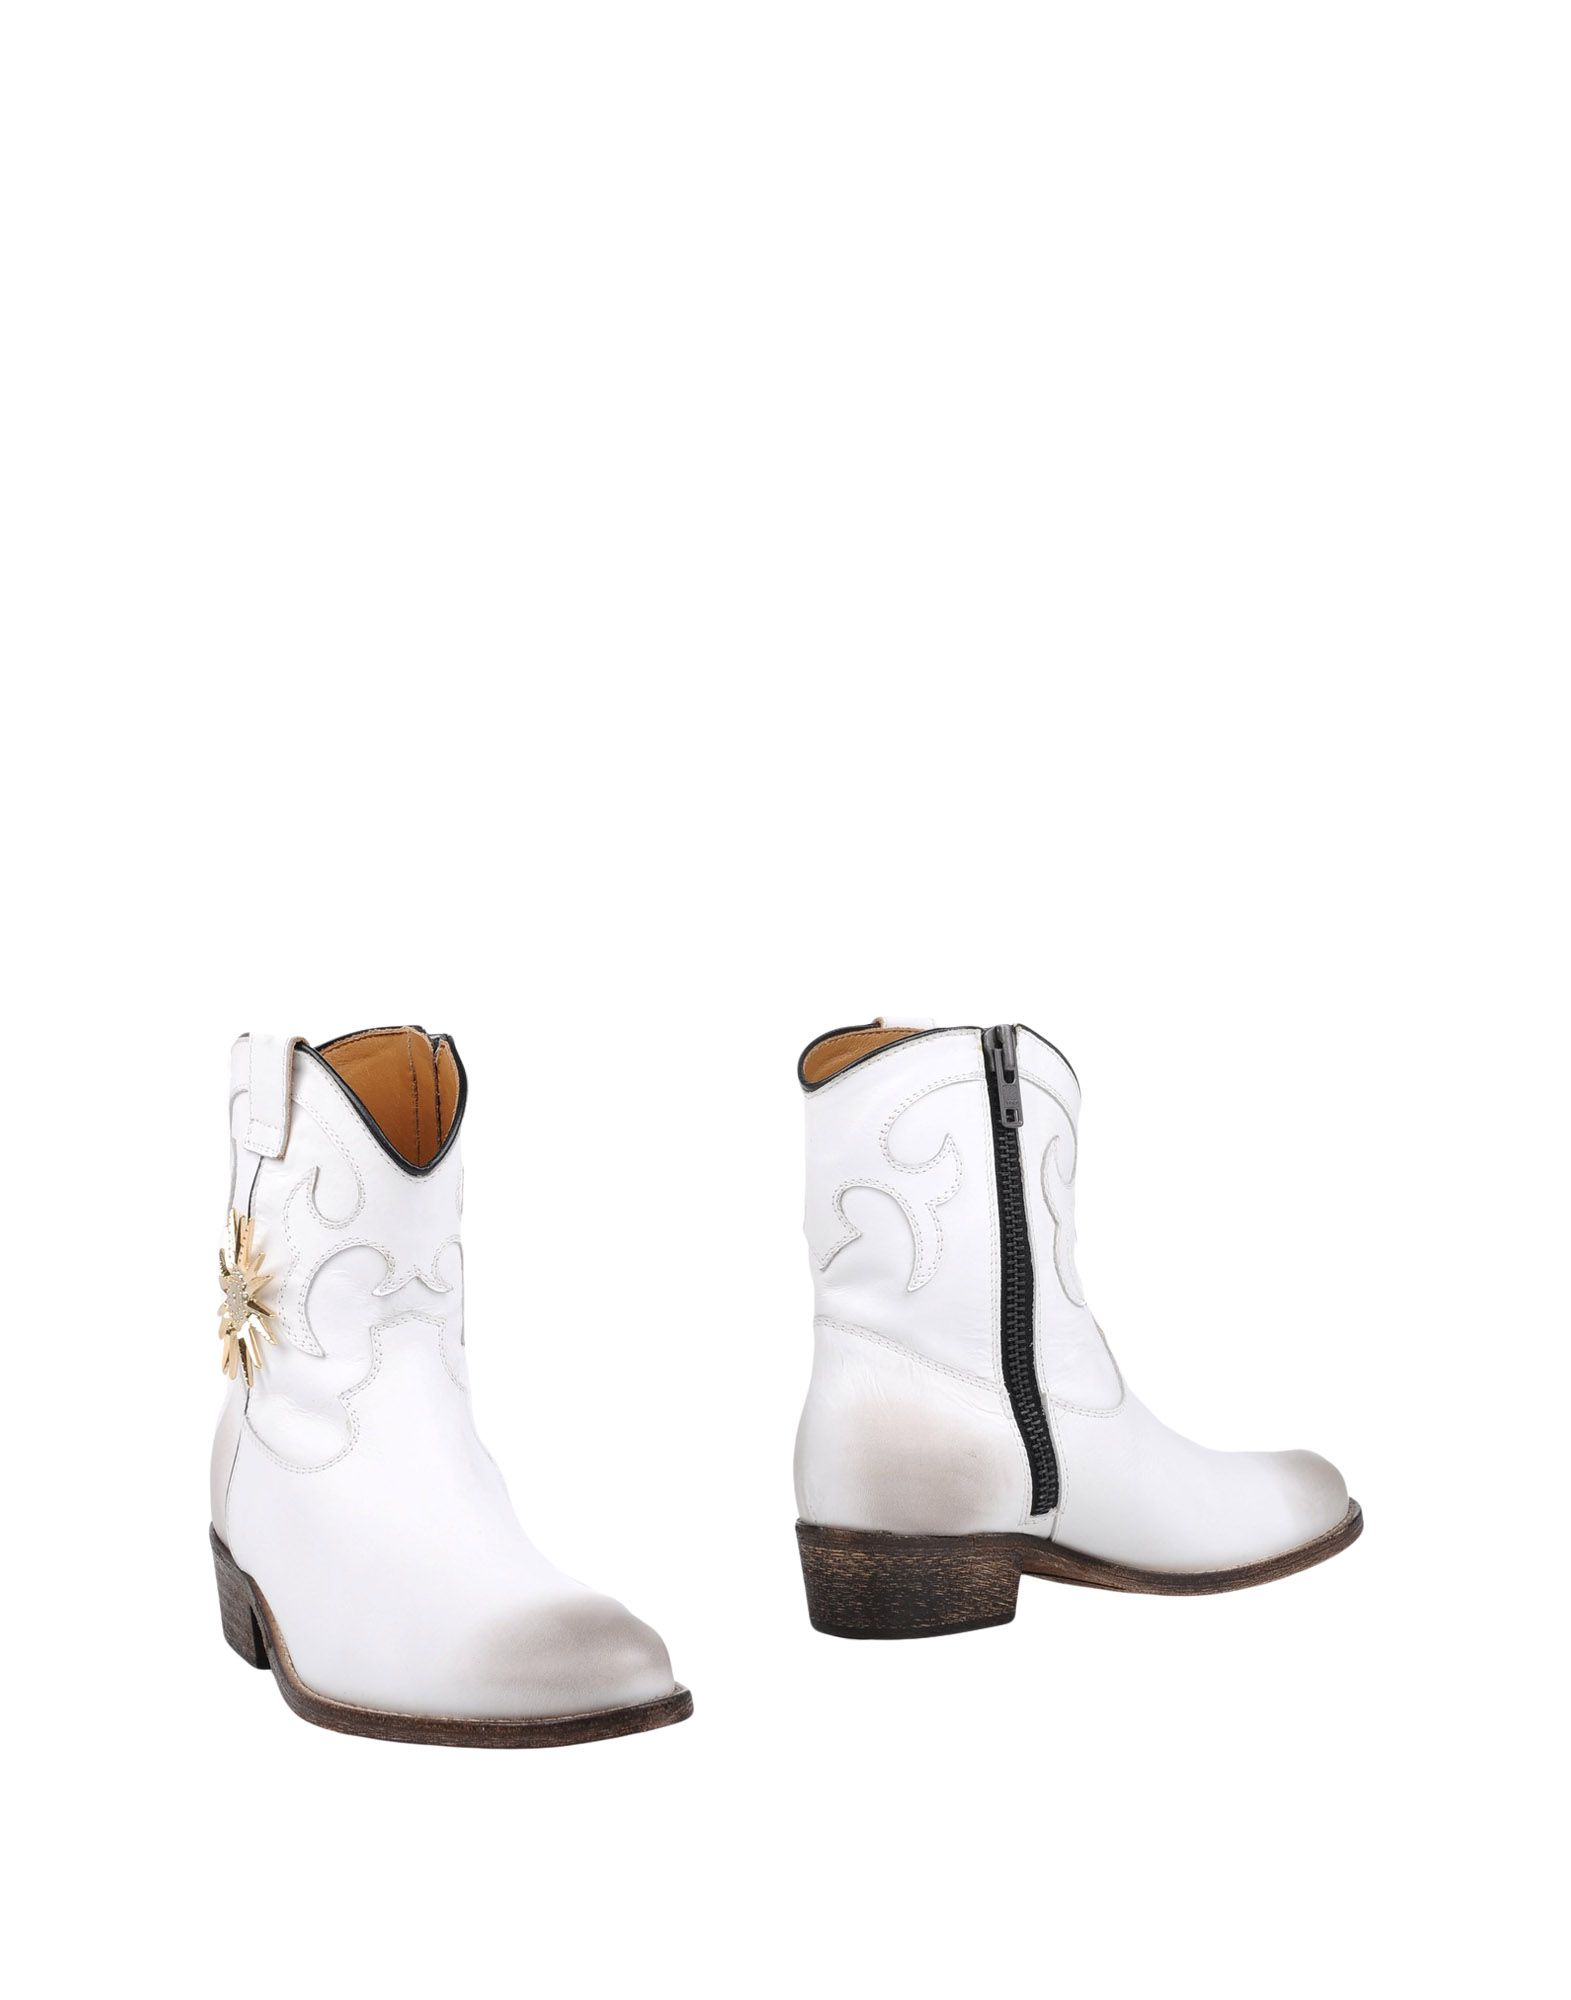 Bottine Via Roma 15 Femme - Bottines Via Roma 15 sur